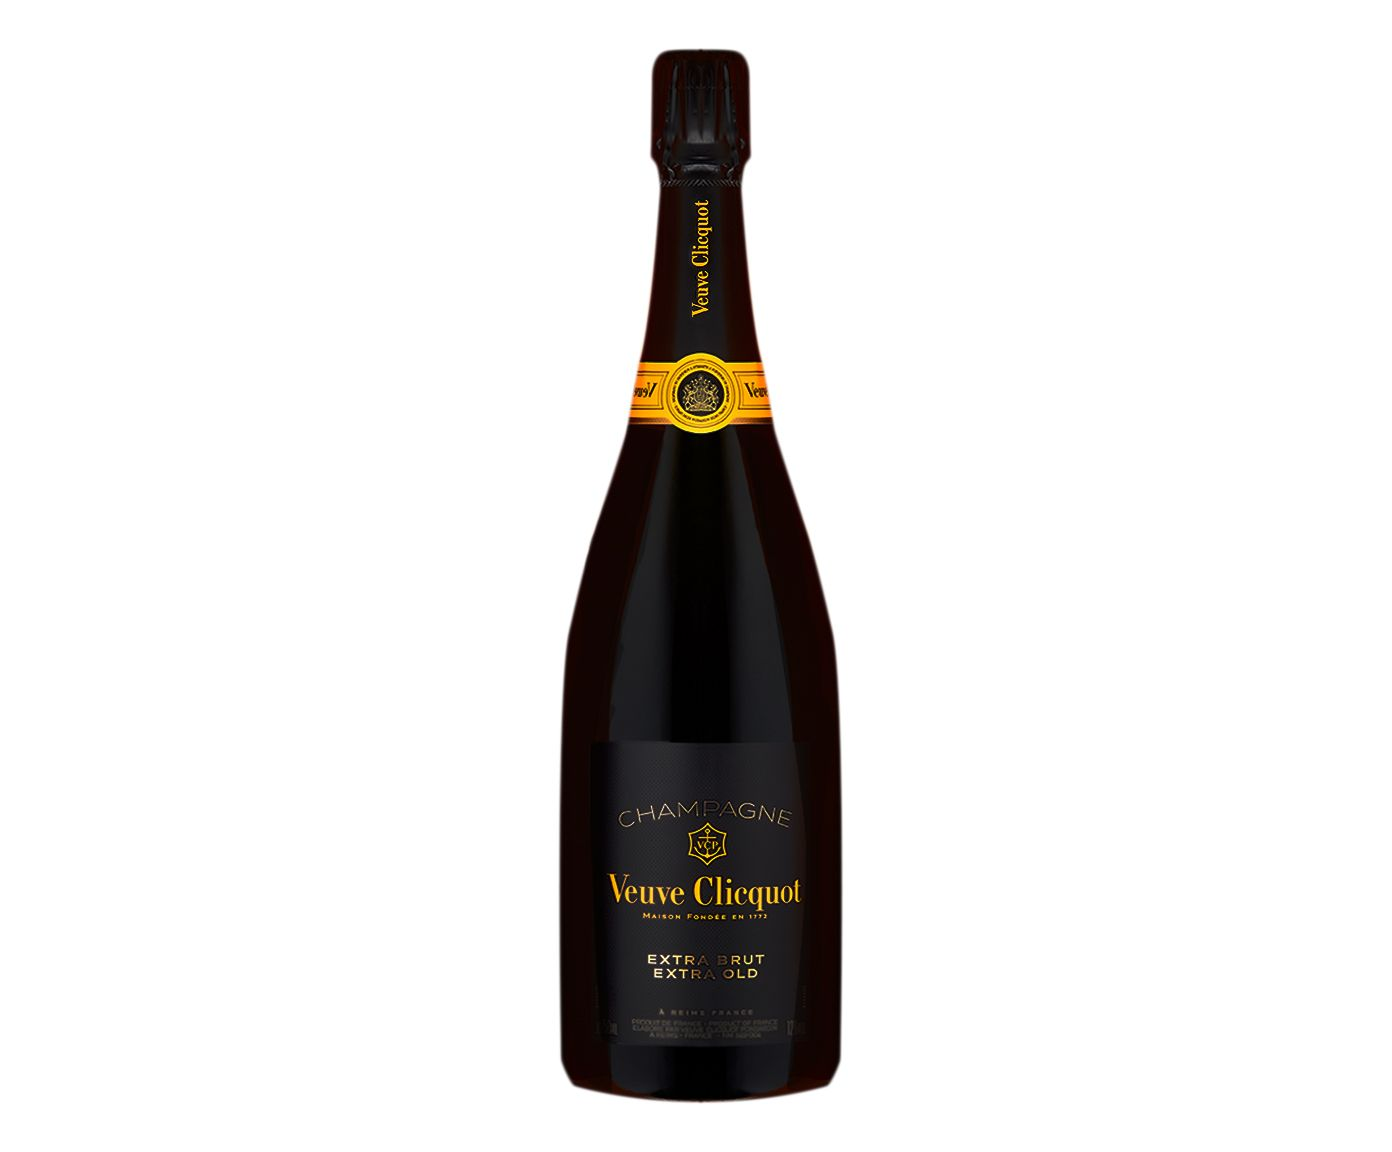 Veuve Clicuot Extra Brut Old - 750ml | Westwing.com.br